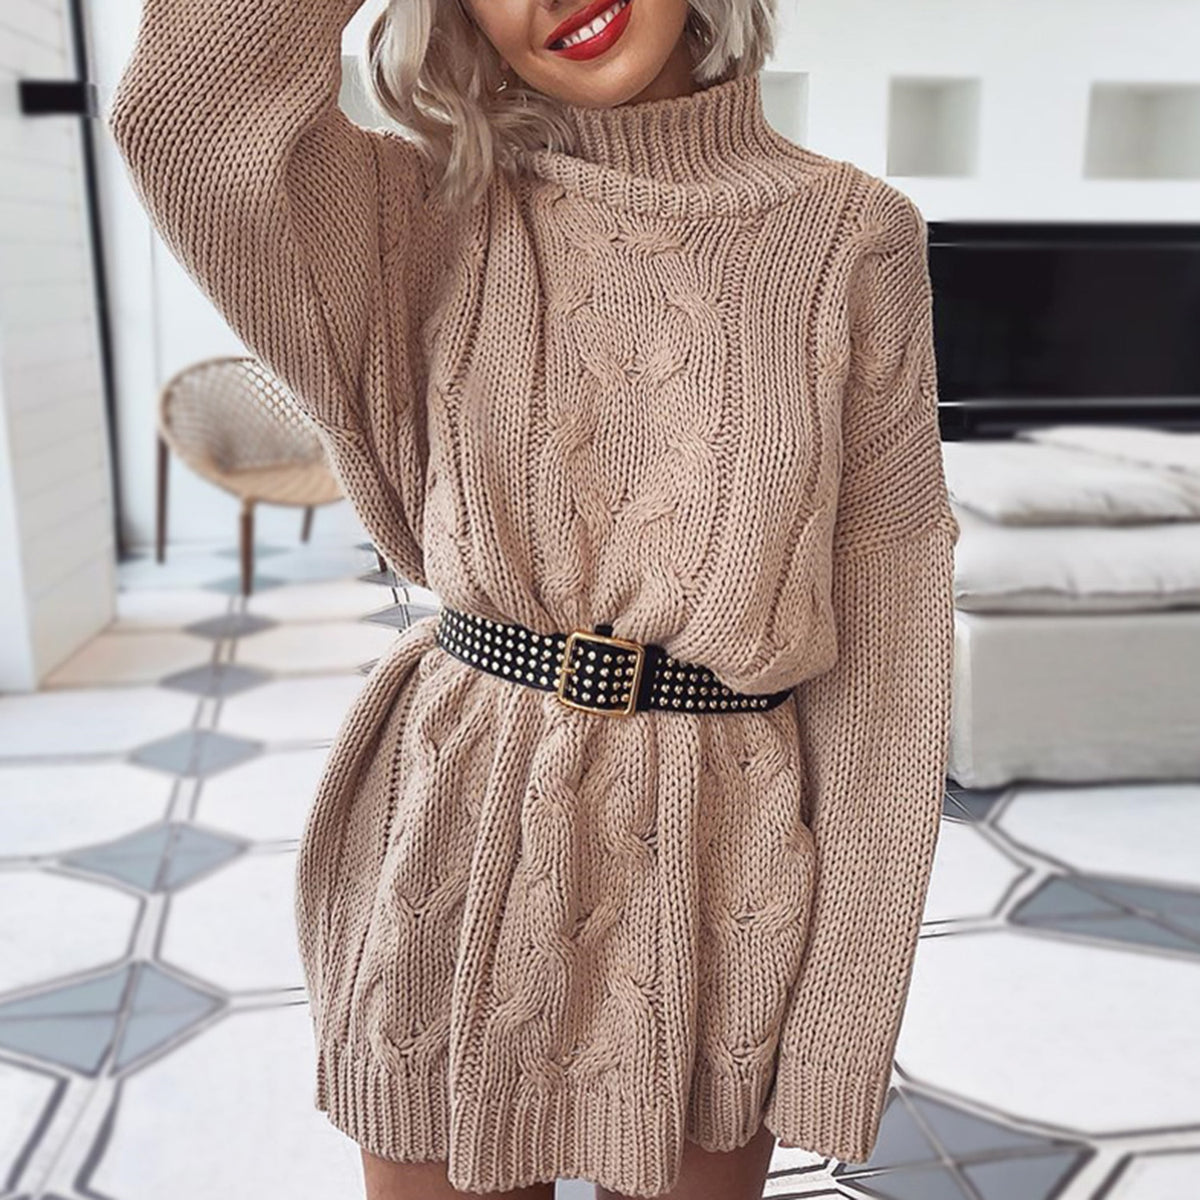 Oversized Cable High Neck Long Sleeve Knit Dress